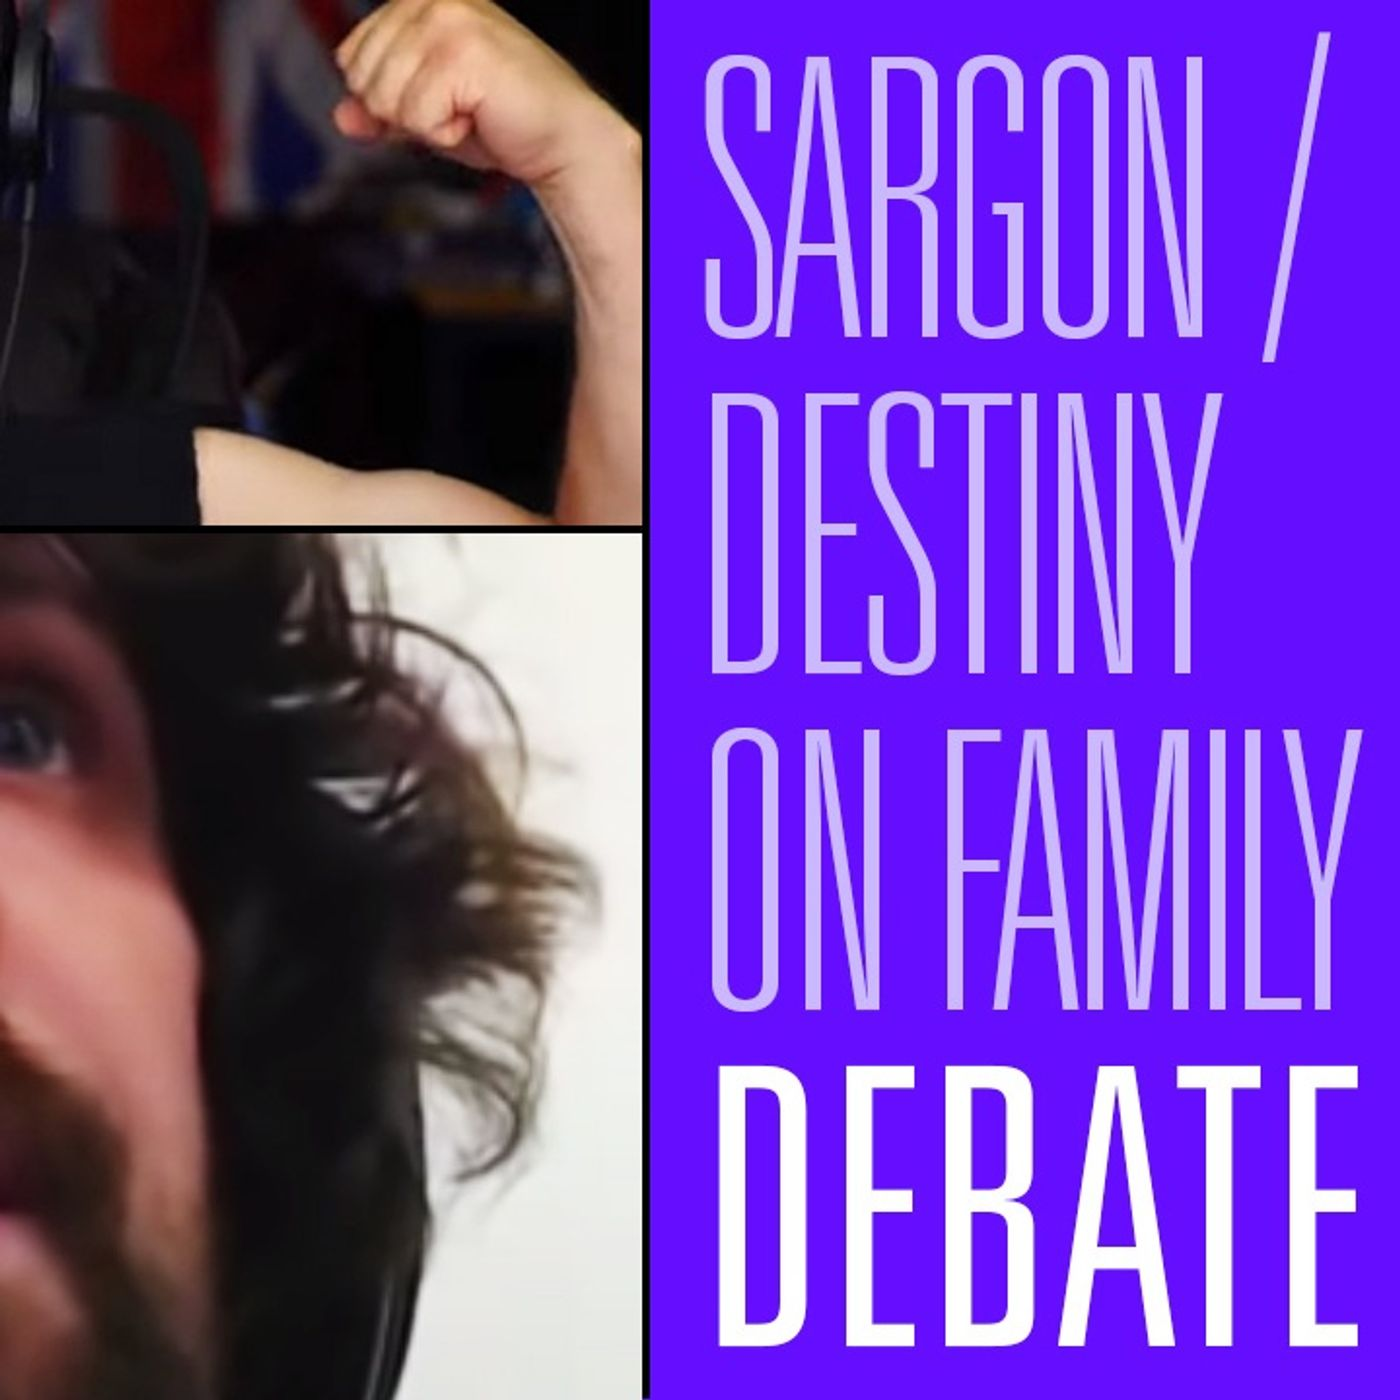 Carl Benjamin & Destiny Discuss the State of Dating, Marriage & Family   HBR Debate 60